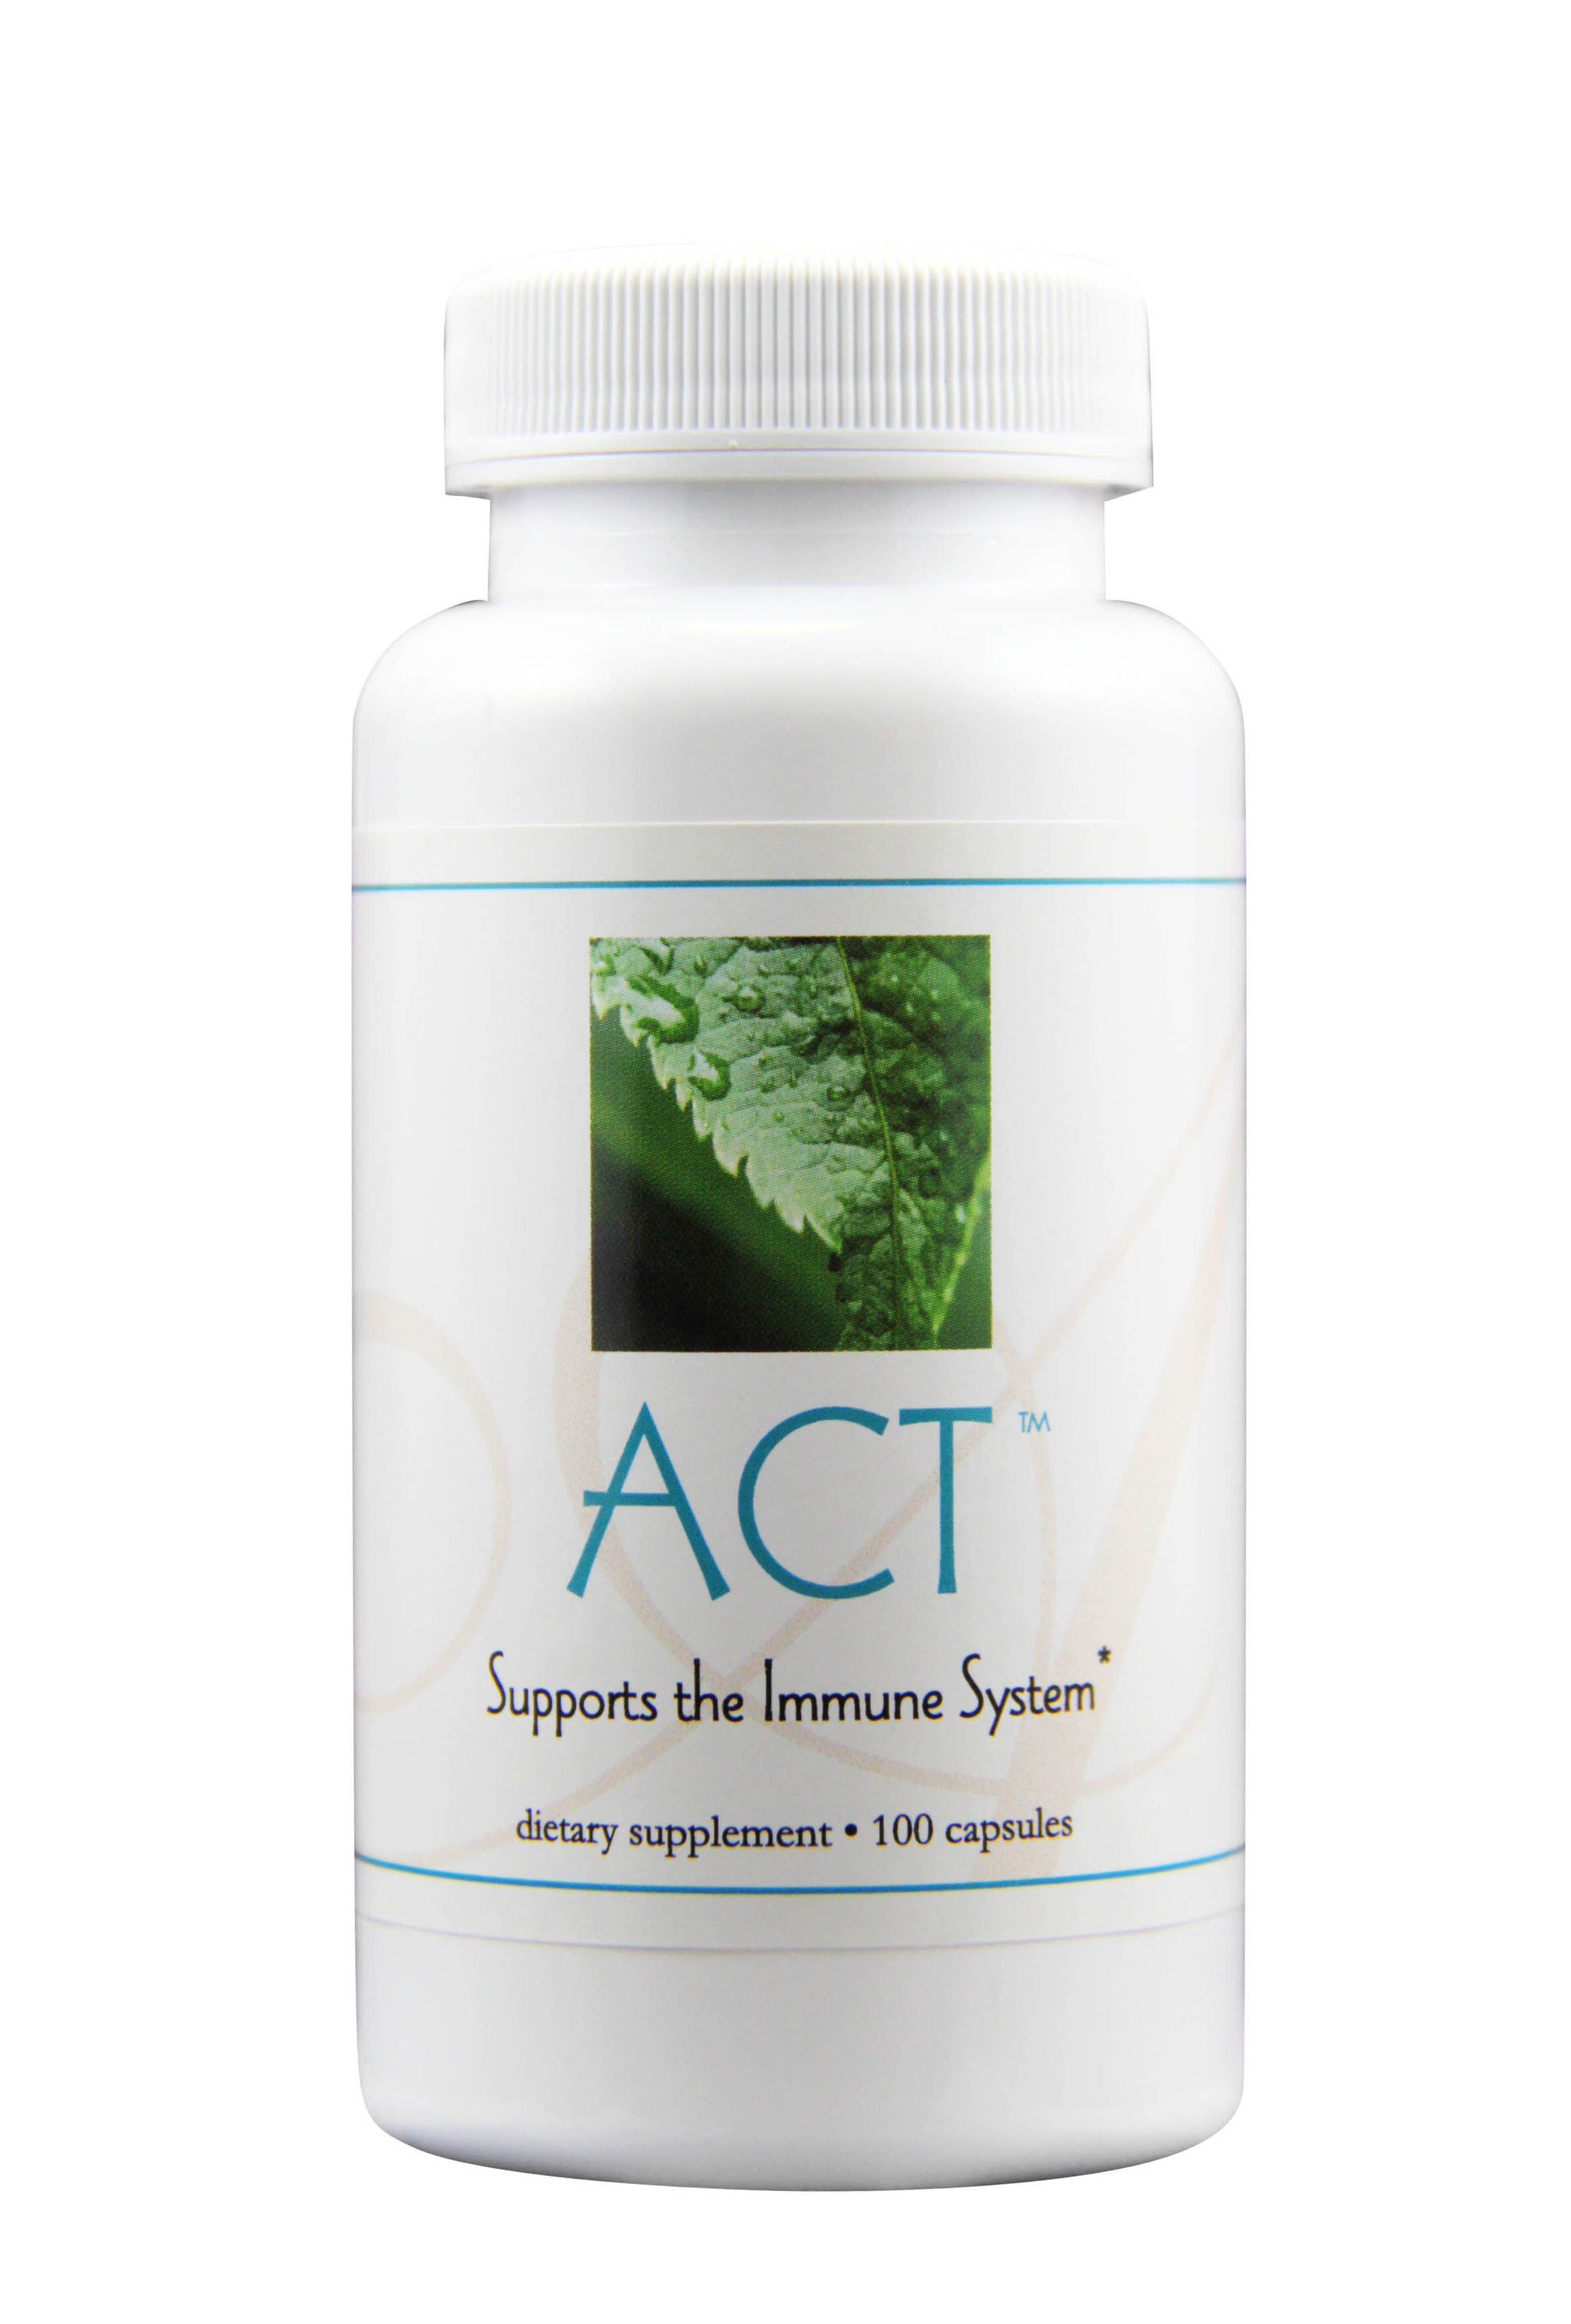 ACT - PROMOTES A HEALTHY IMMUNE SYSTEM*Featured Ingredients: Luffa Cylindrica, Ganoderma, Barley Leaf, Tangerine Peel